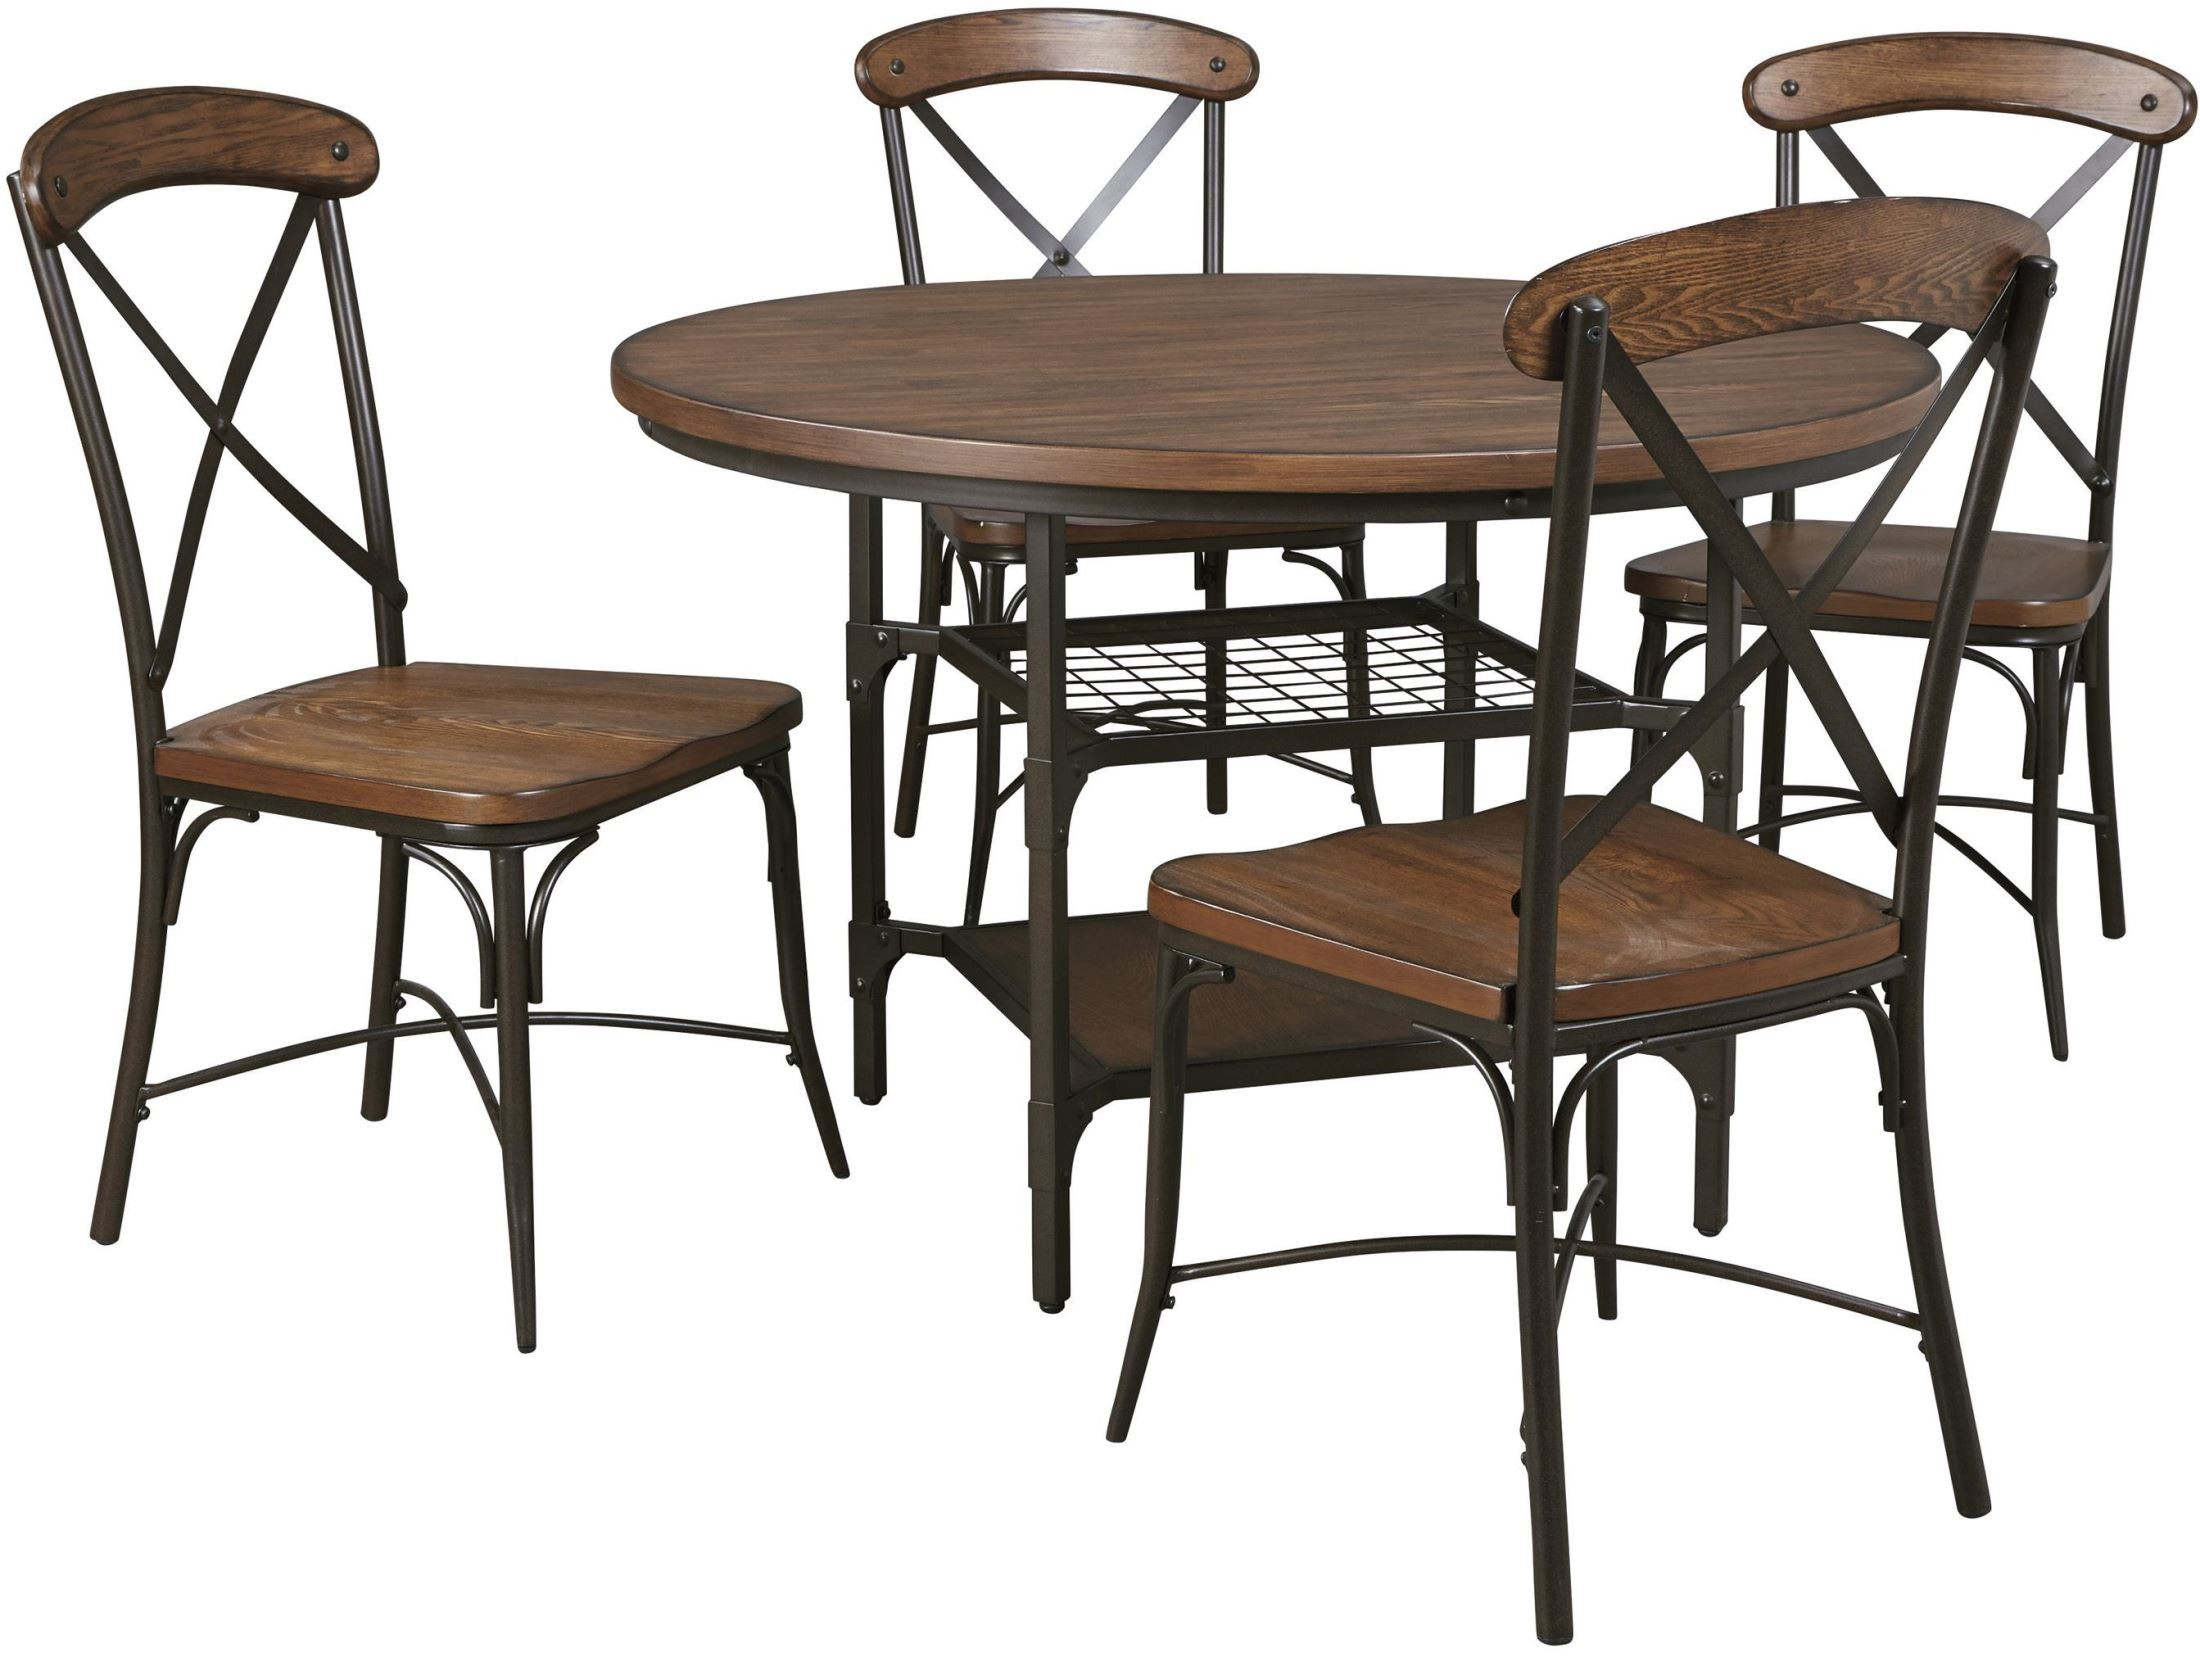 Rolena Brown Round Dining Room Set from Ashley D405 15  : d405 15 014 sw2 from colemanfurniture.com size 2200 x 1657 jpeg 373kB